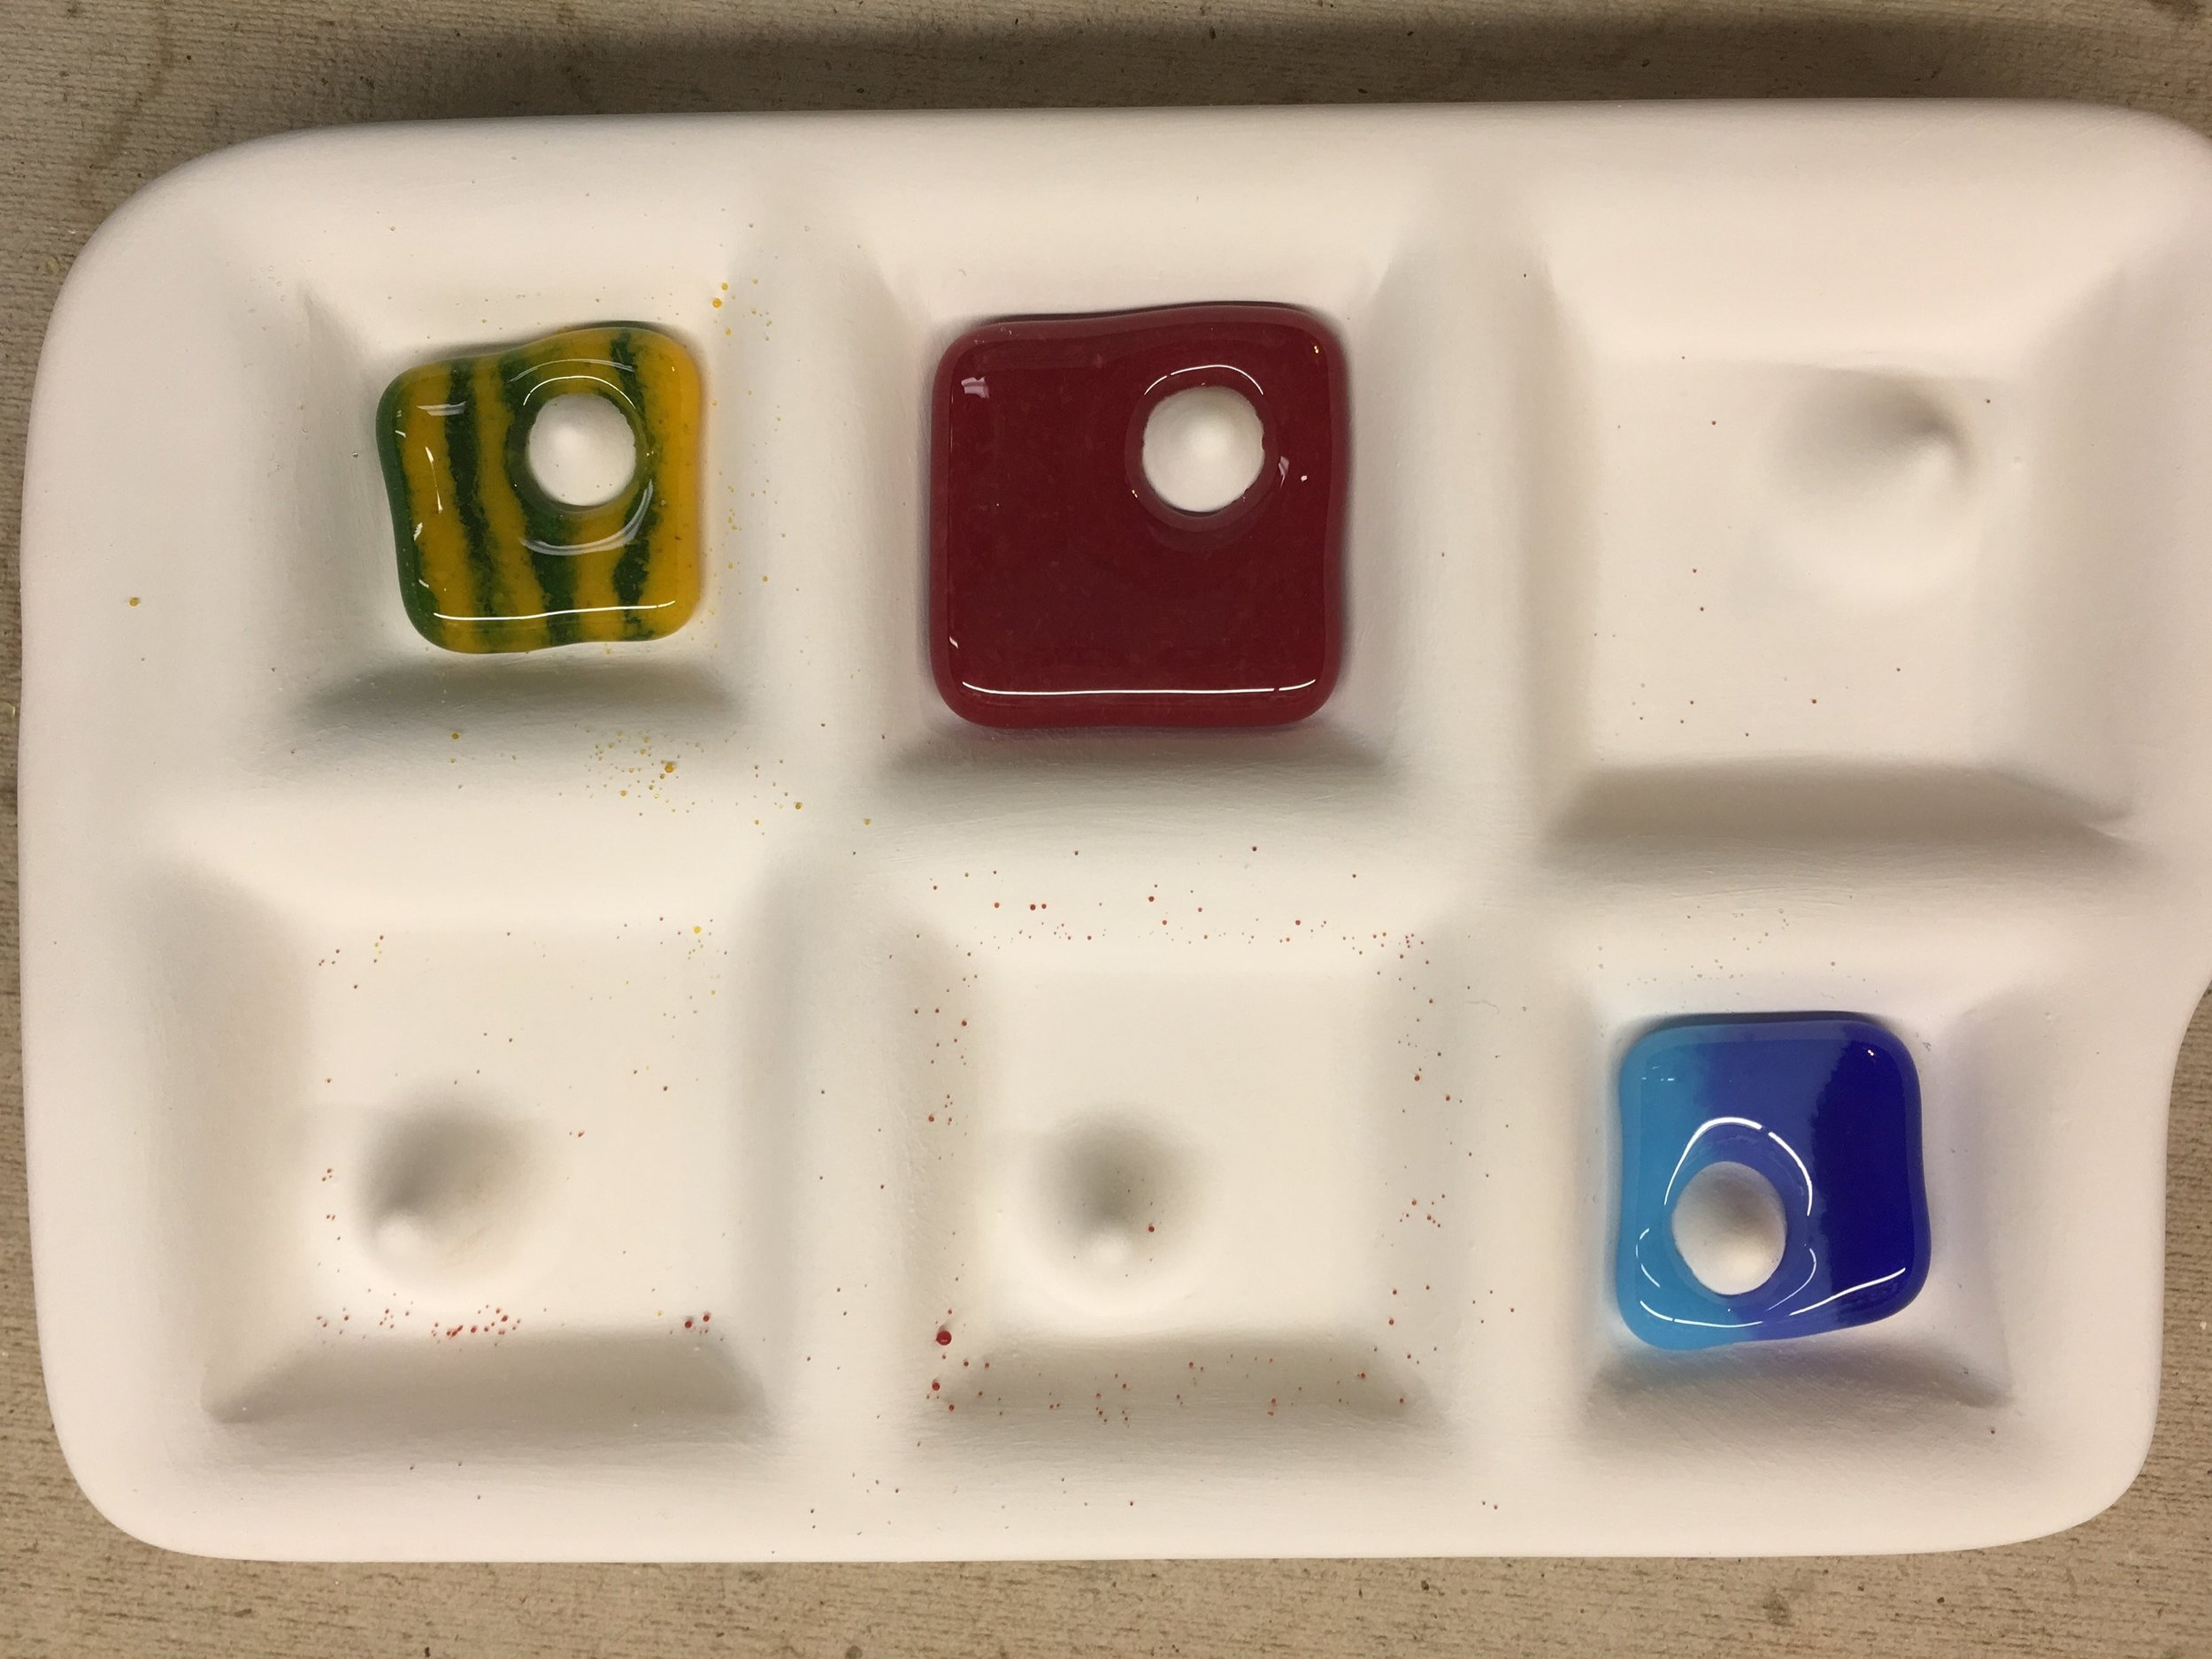 fused_square_pendants.JPG